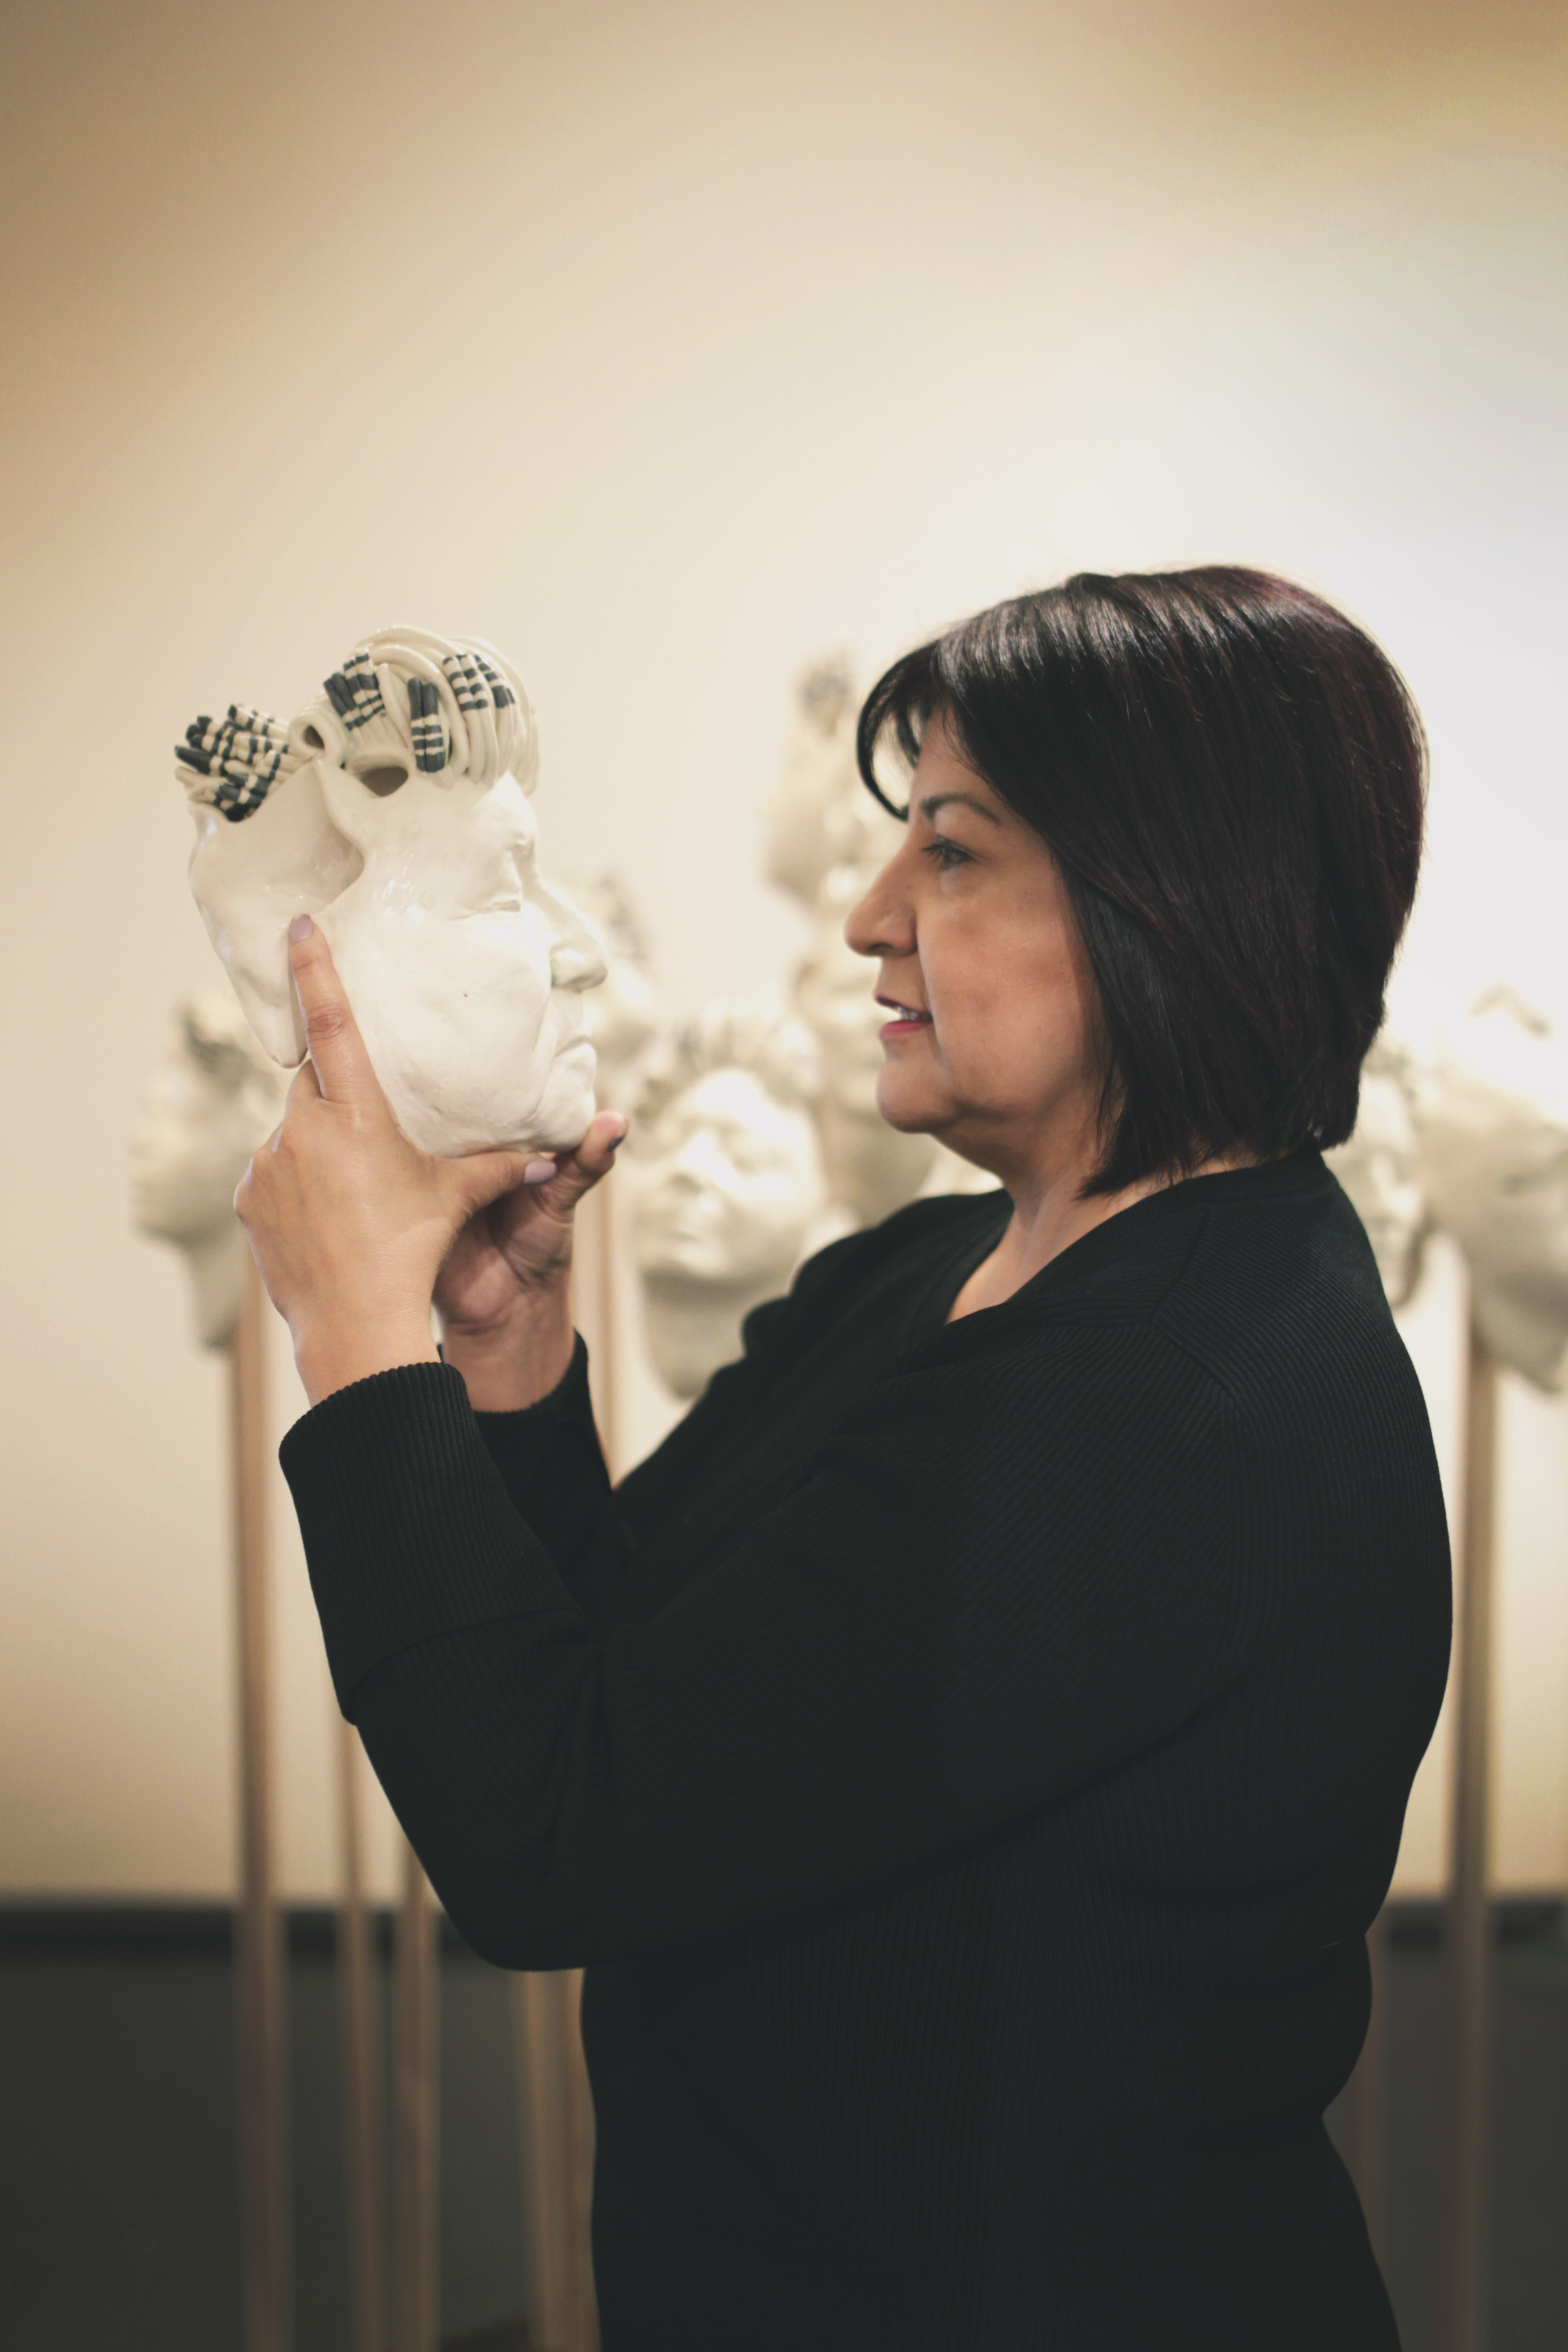 Chilean artist Cecilia Castro will have her art exhibited at the gallery and host a ceramics workshop.